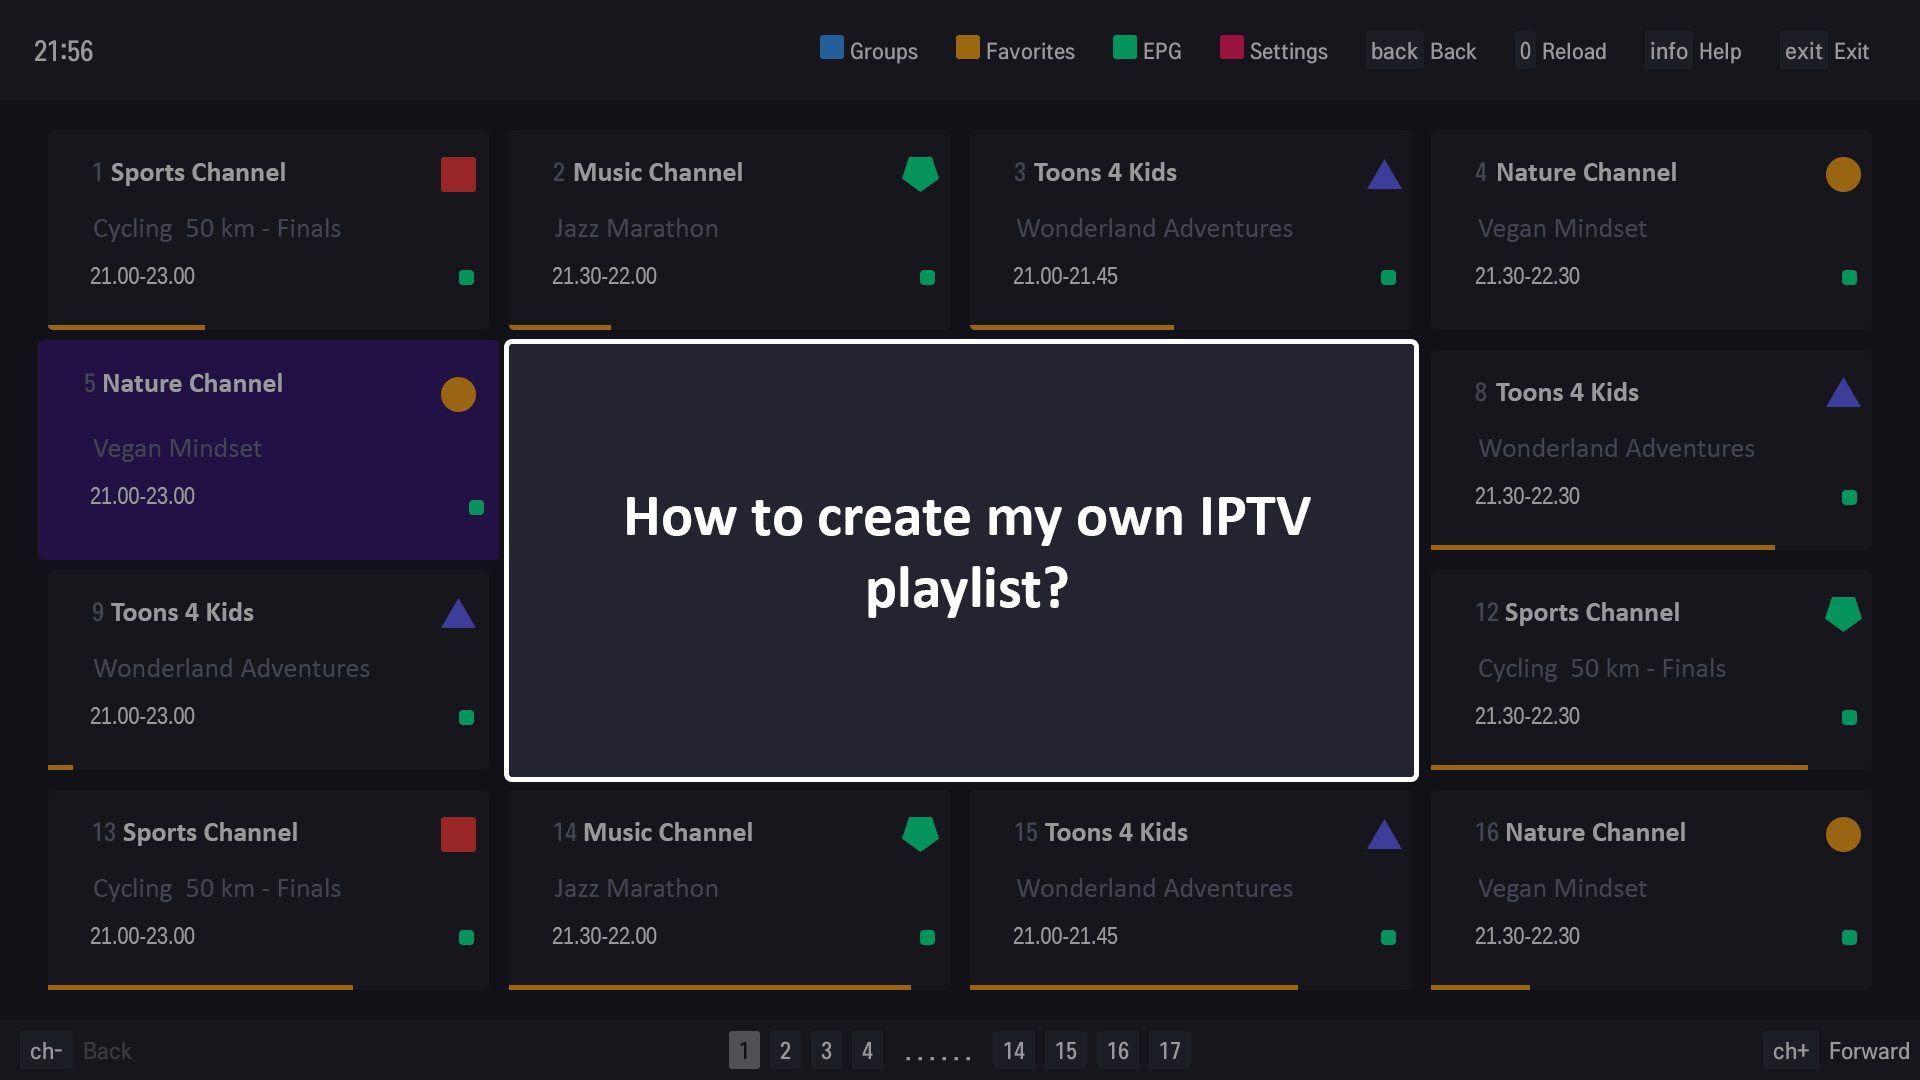 How to create IPTV playlist